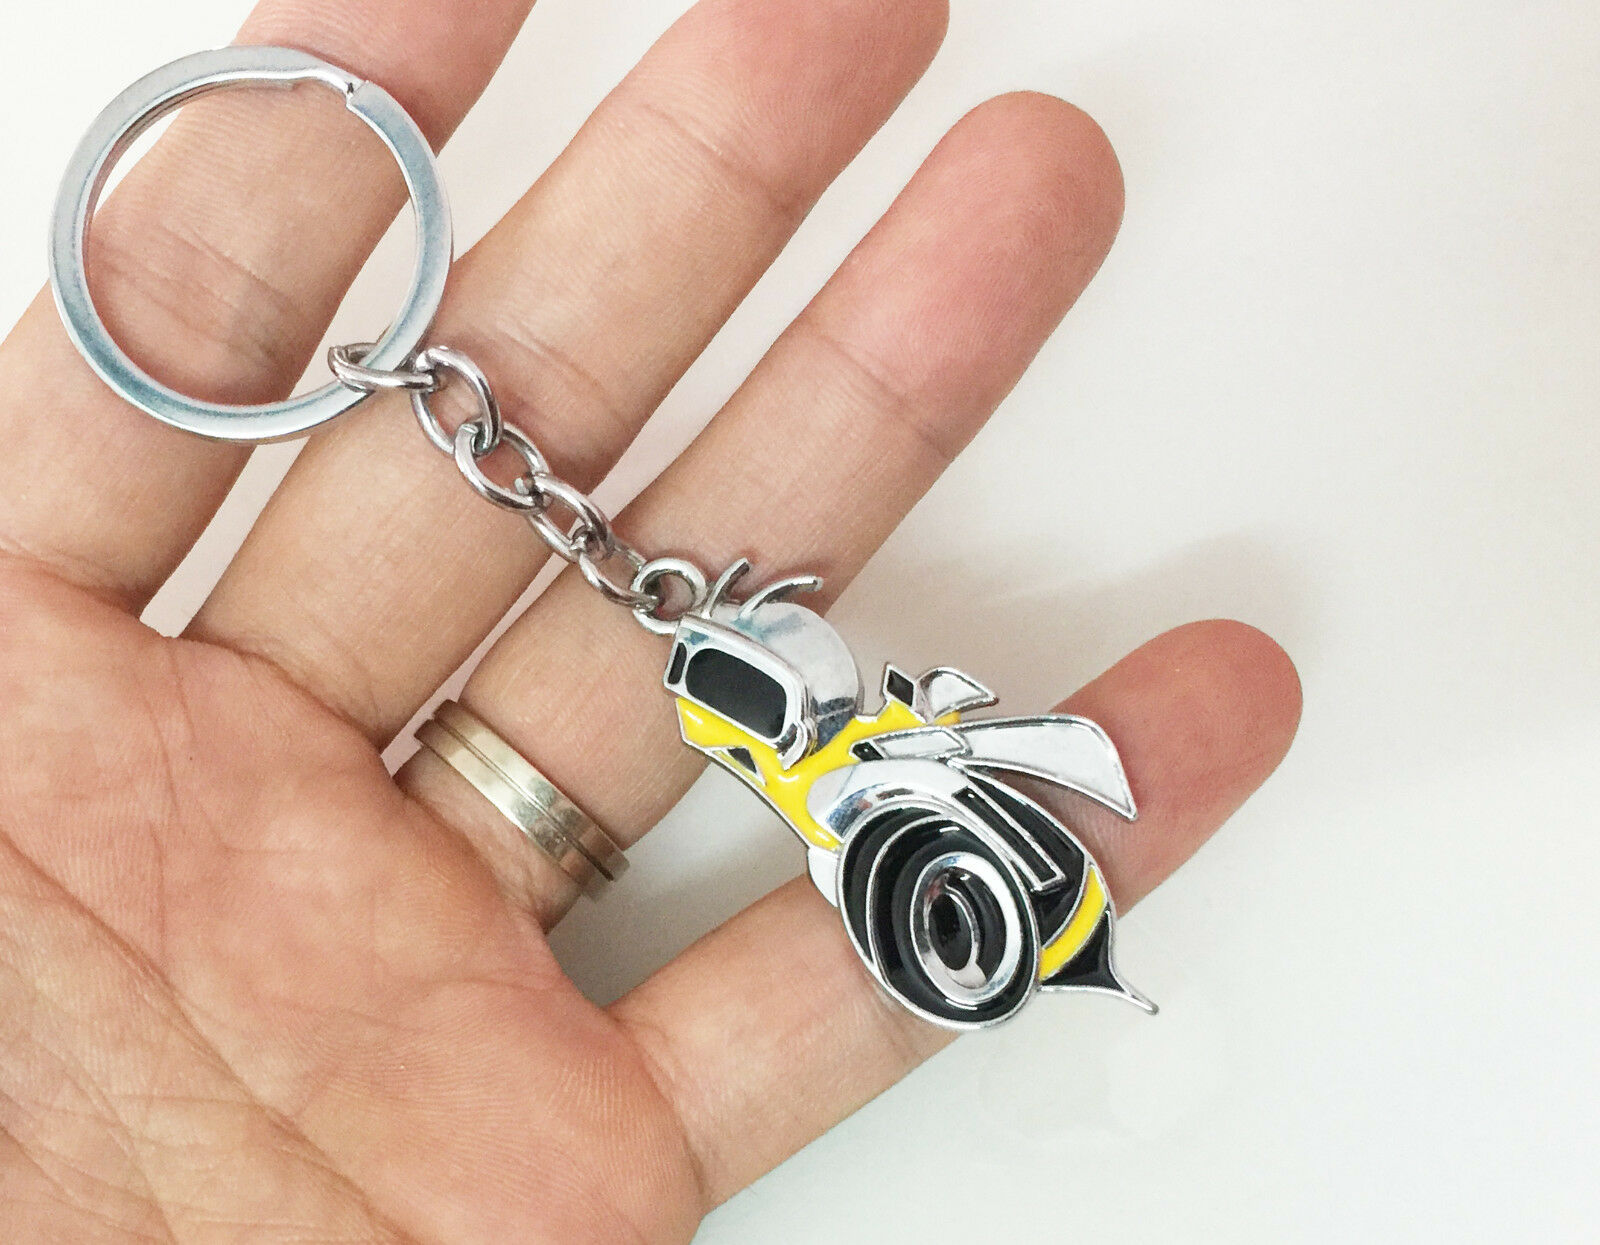 dodge charger scat pack keychain New Metal super bee Bee Scat Pack Keychain Dodge SRT Keyring